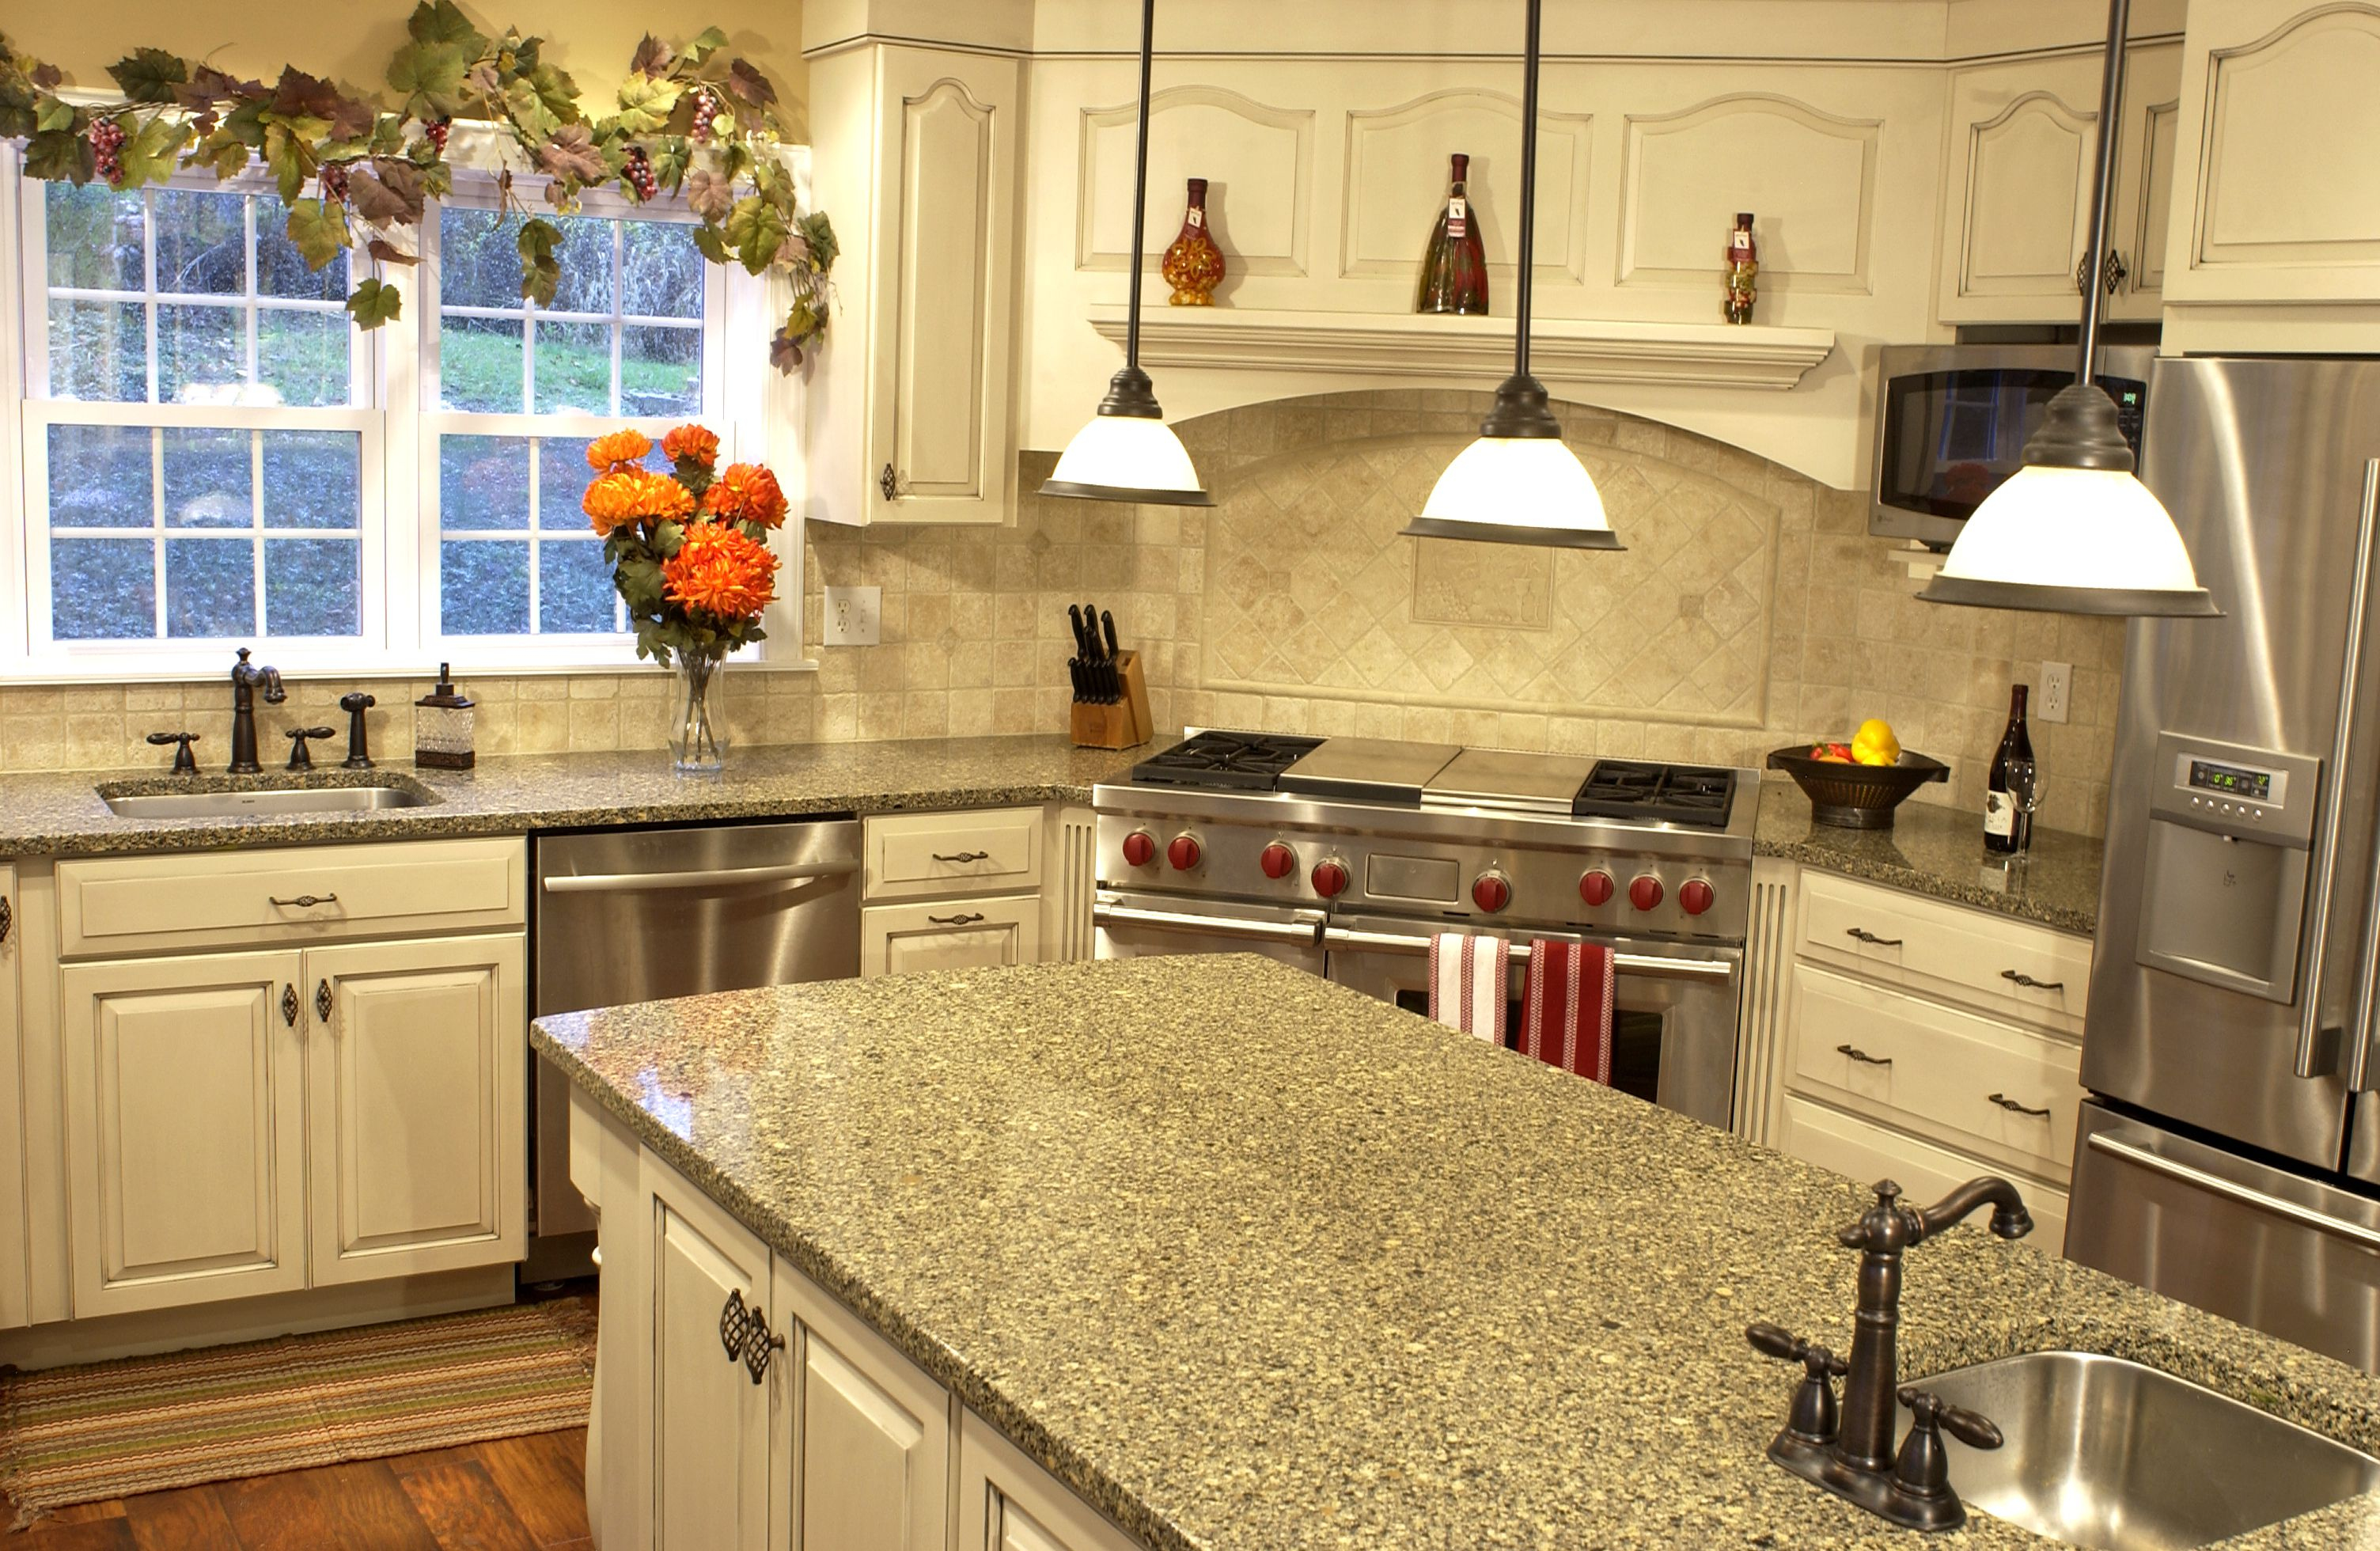 Kitchen Counter Decor Ideas to Make your Cooking Space Become ...